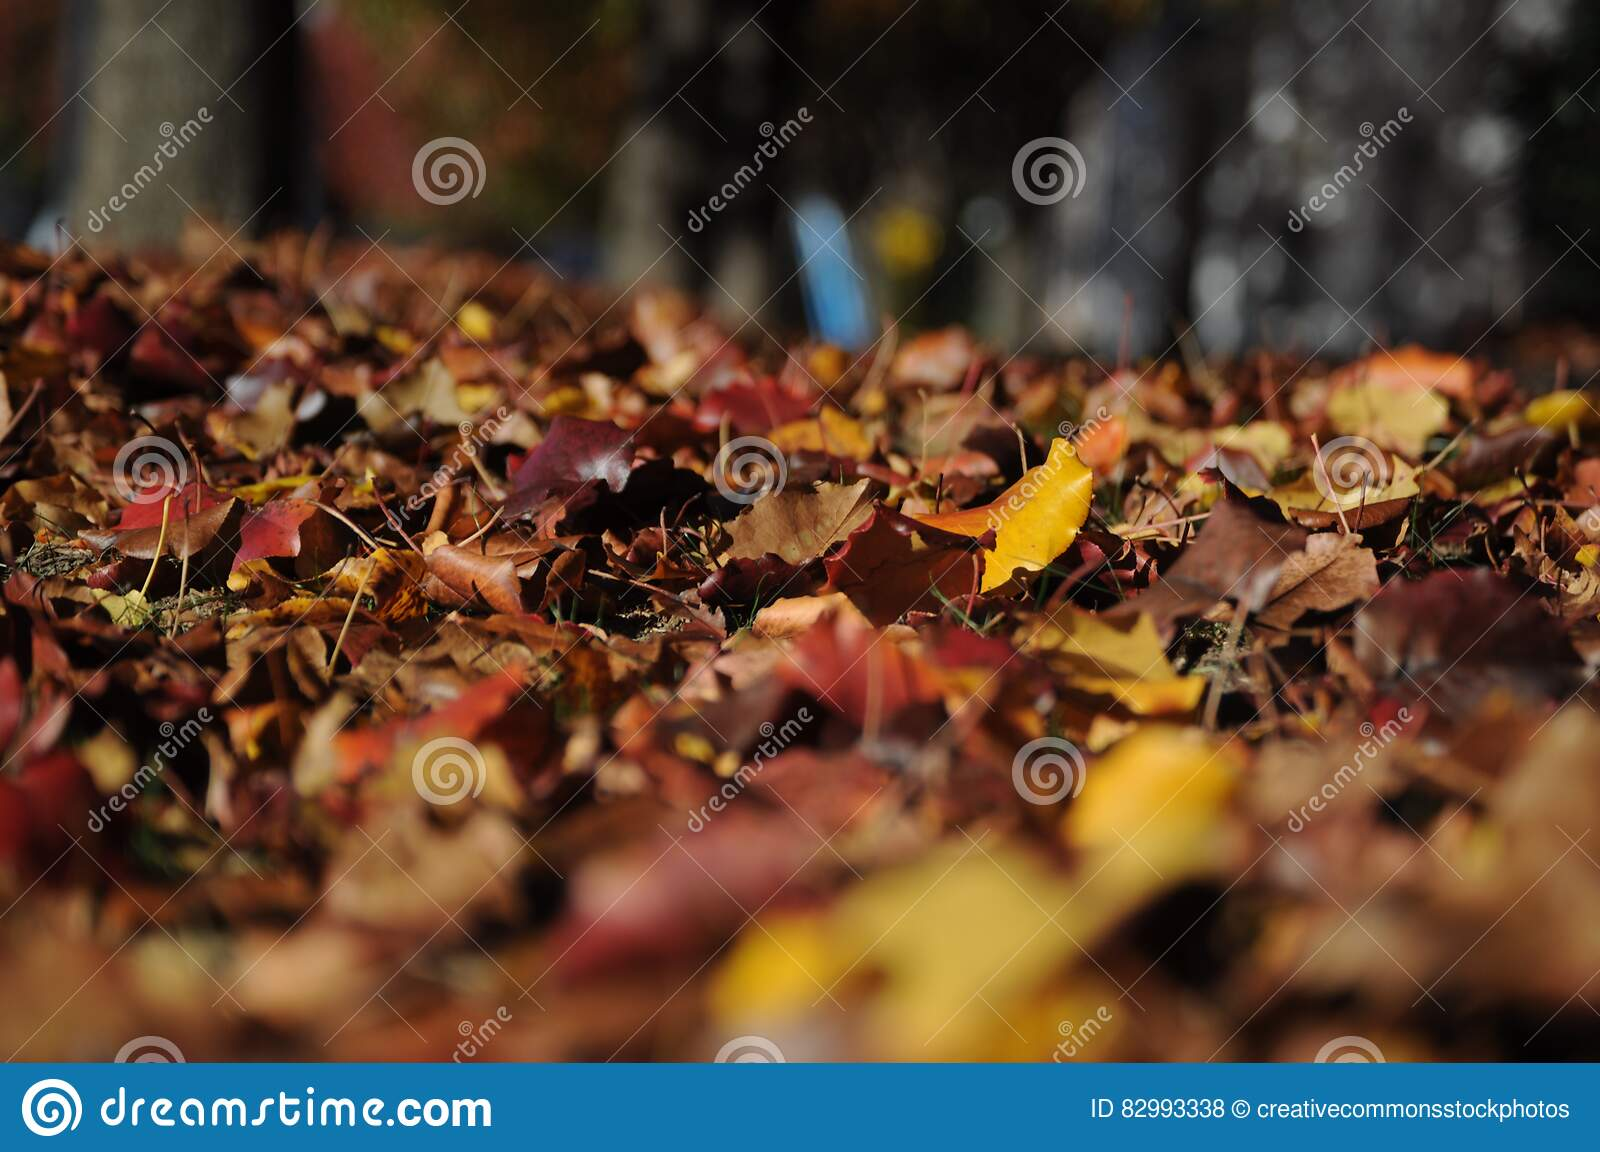 Brown and Red Dried Leaves on Brown Soil